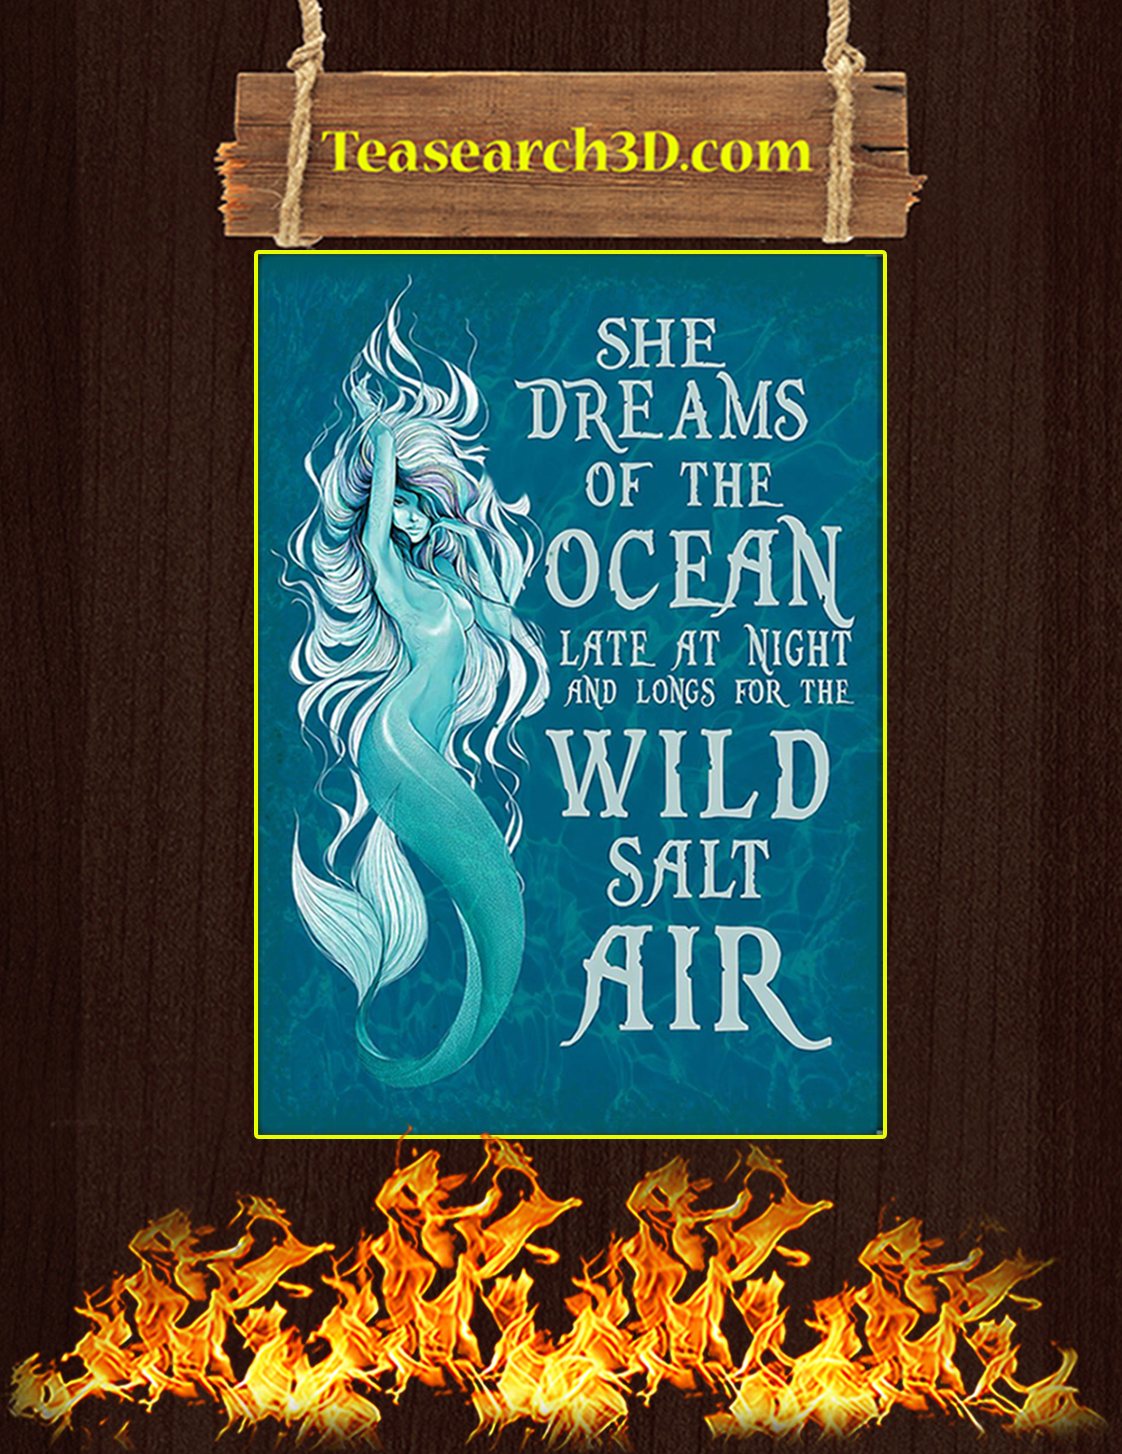 She dreams of the ocean late at night and longs for the wild salt air poster A3